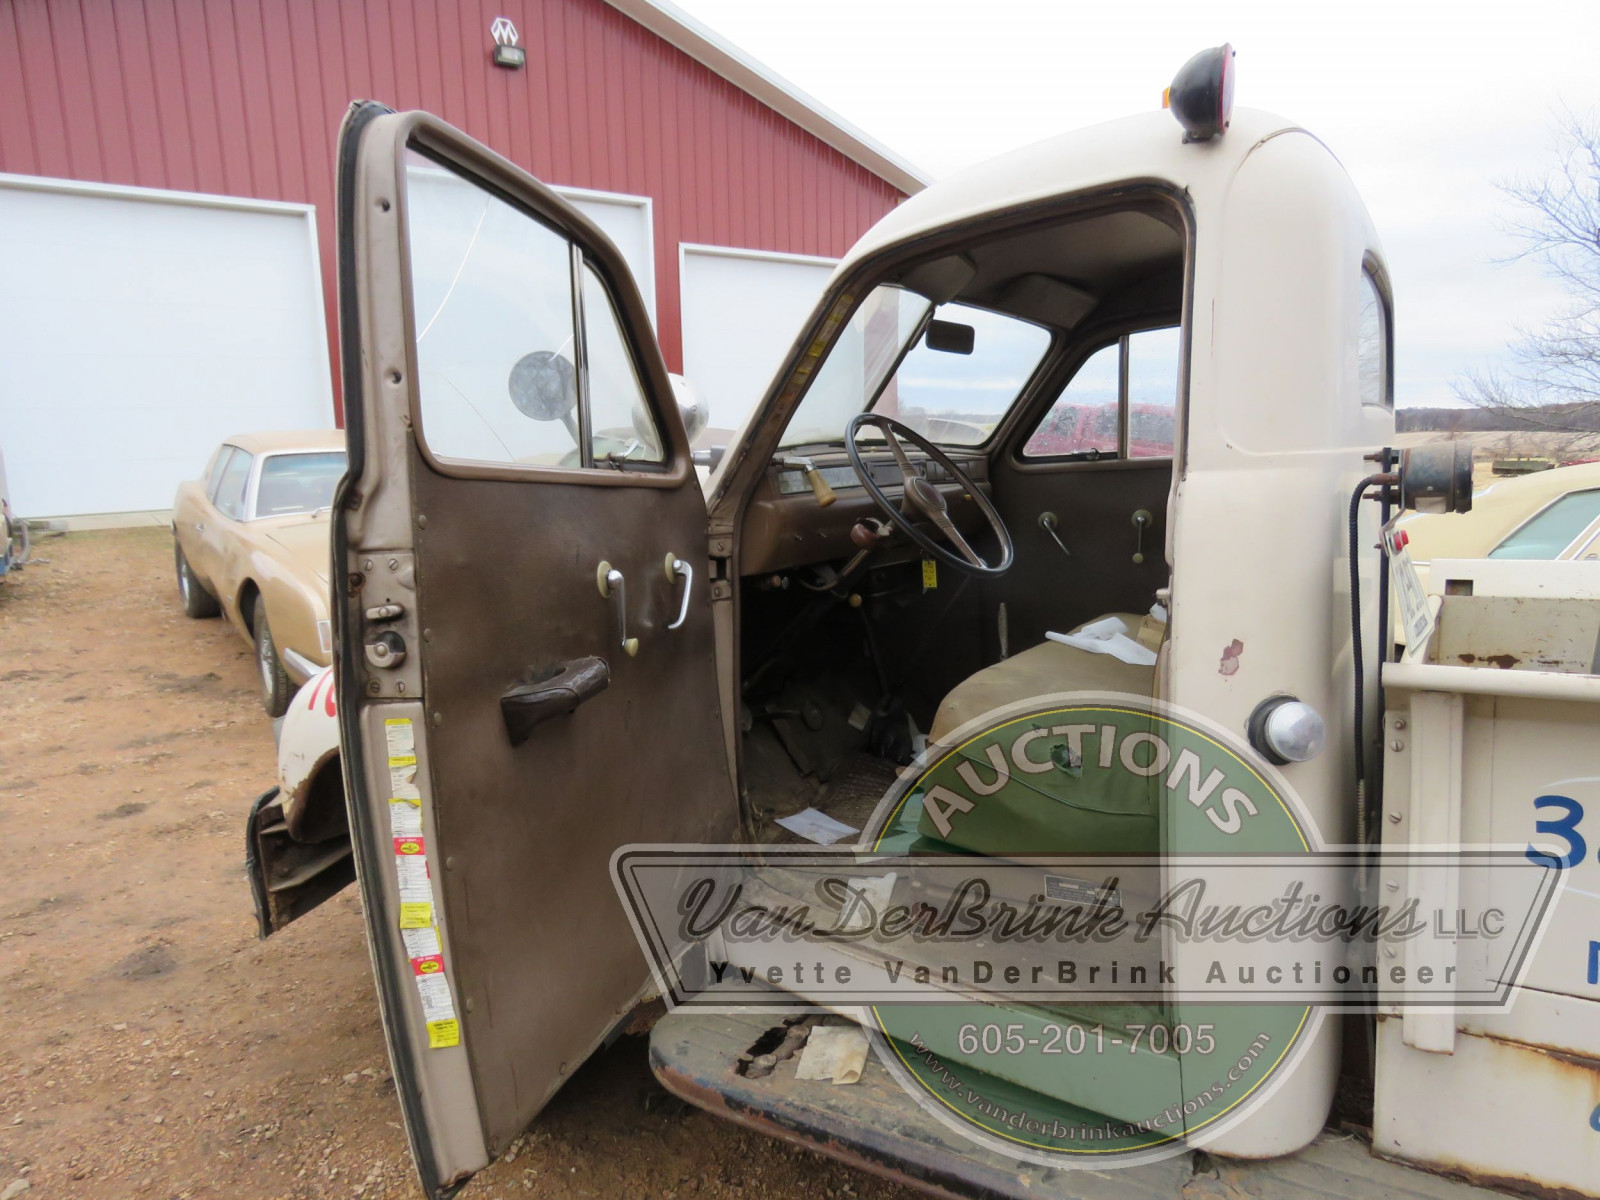 1947 Studebaker Towtruck - Image 11